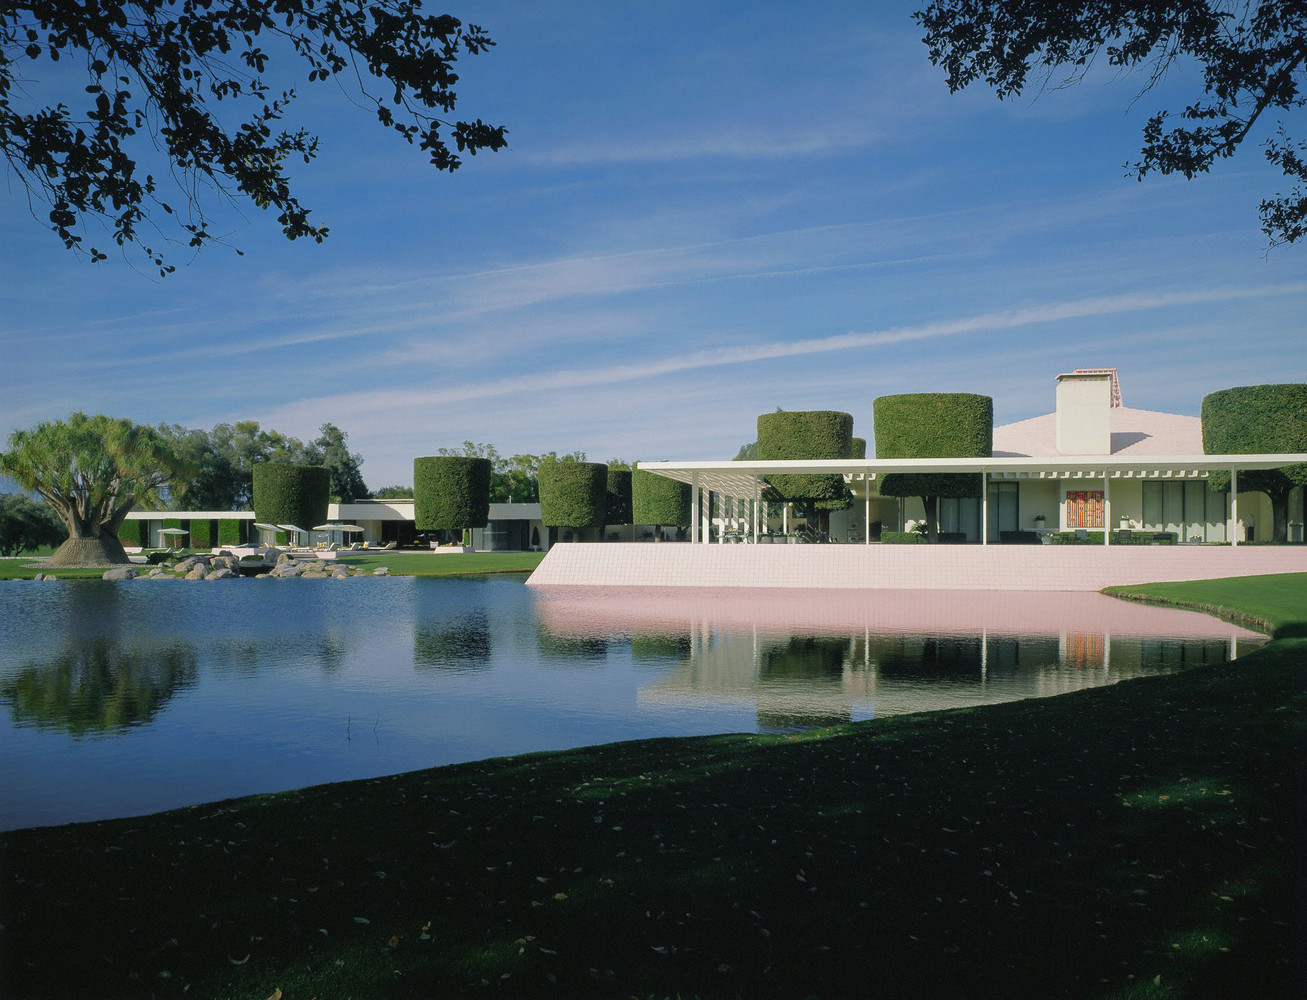 Pacific Standard Time Presents: Modern Architecture in L.A.A. Quincy Jones: Building & Gallery of Pacific Standard Time Presents: Modern Architecture in ...